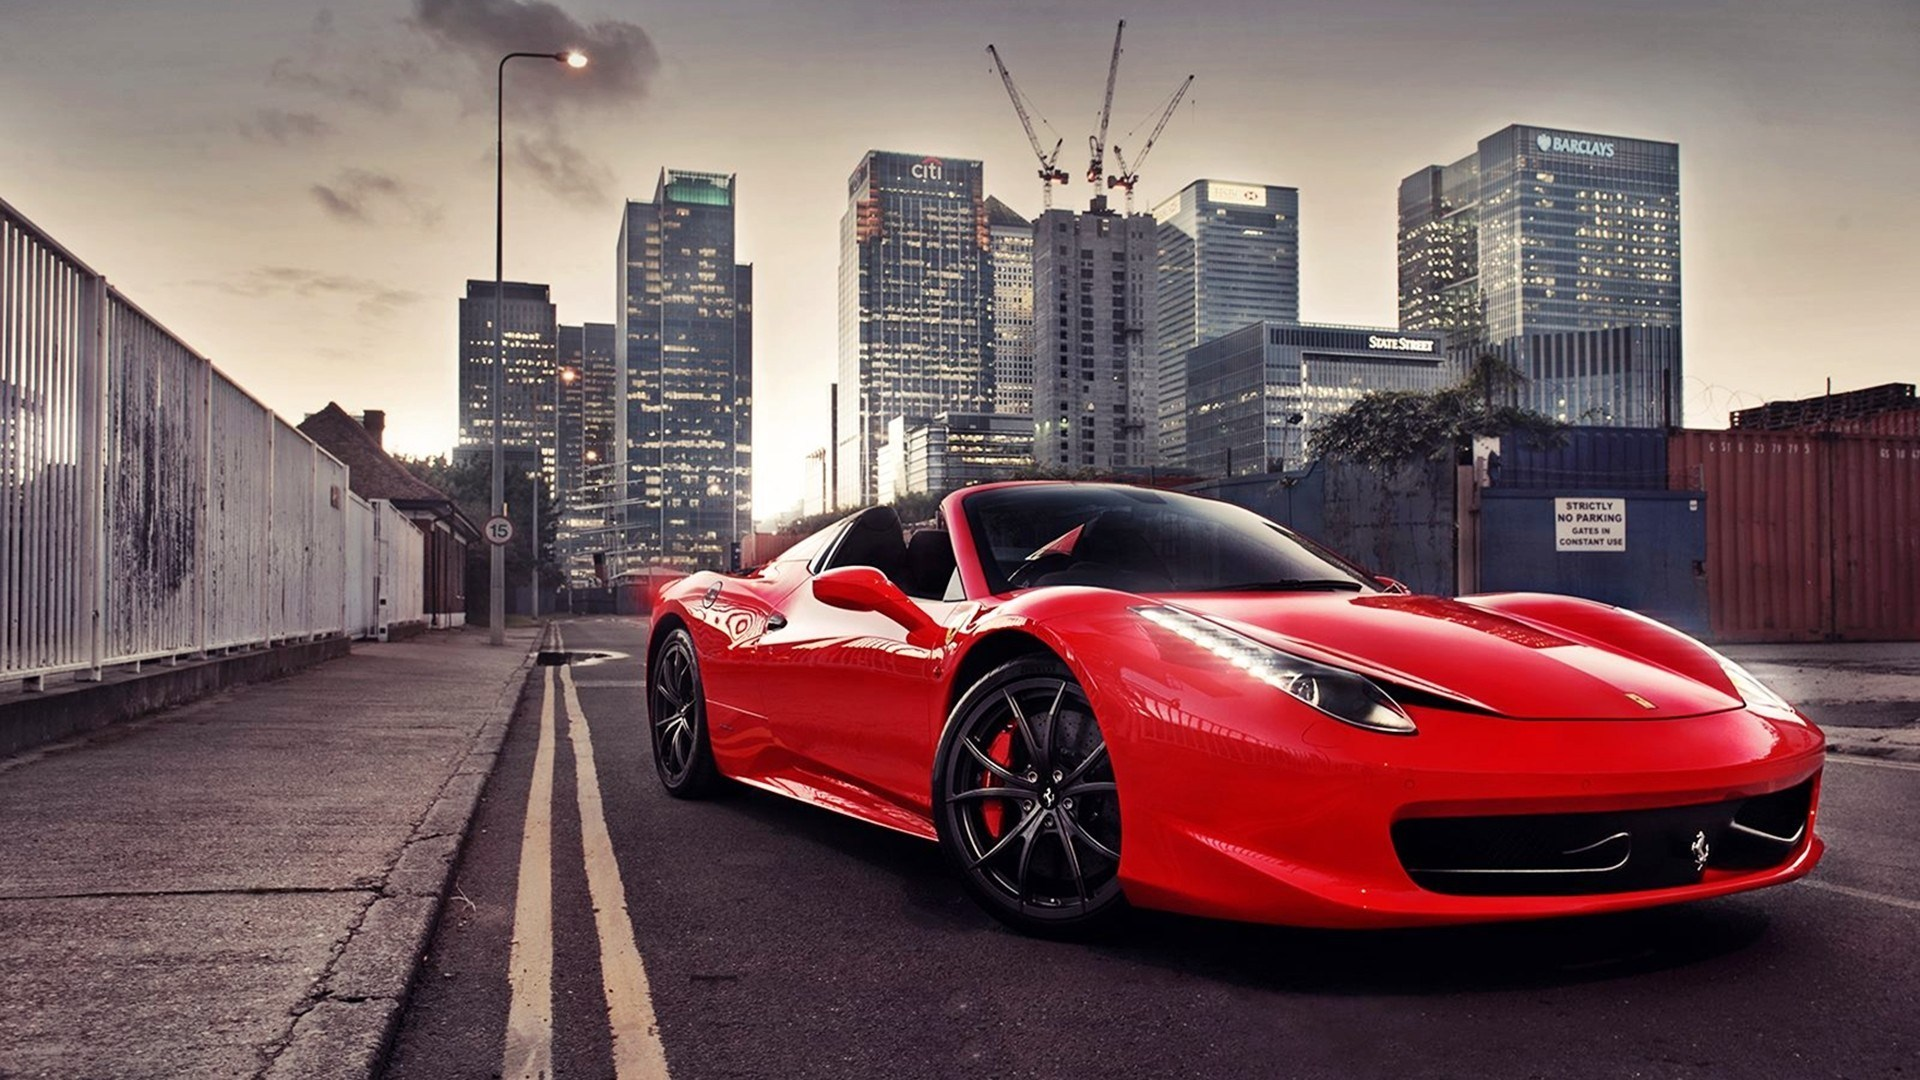 Red Ferrari 458 Italia Street City Photo